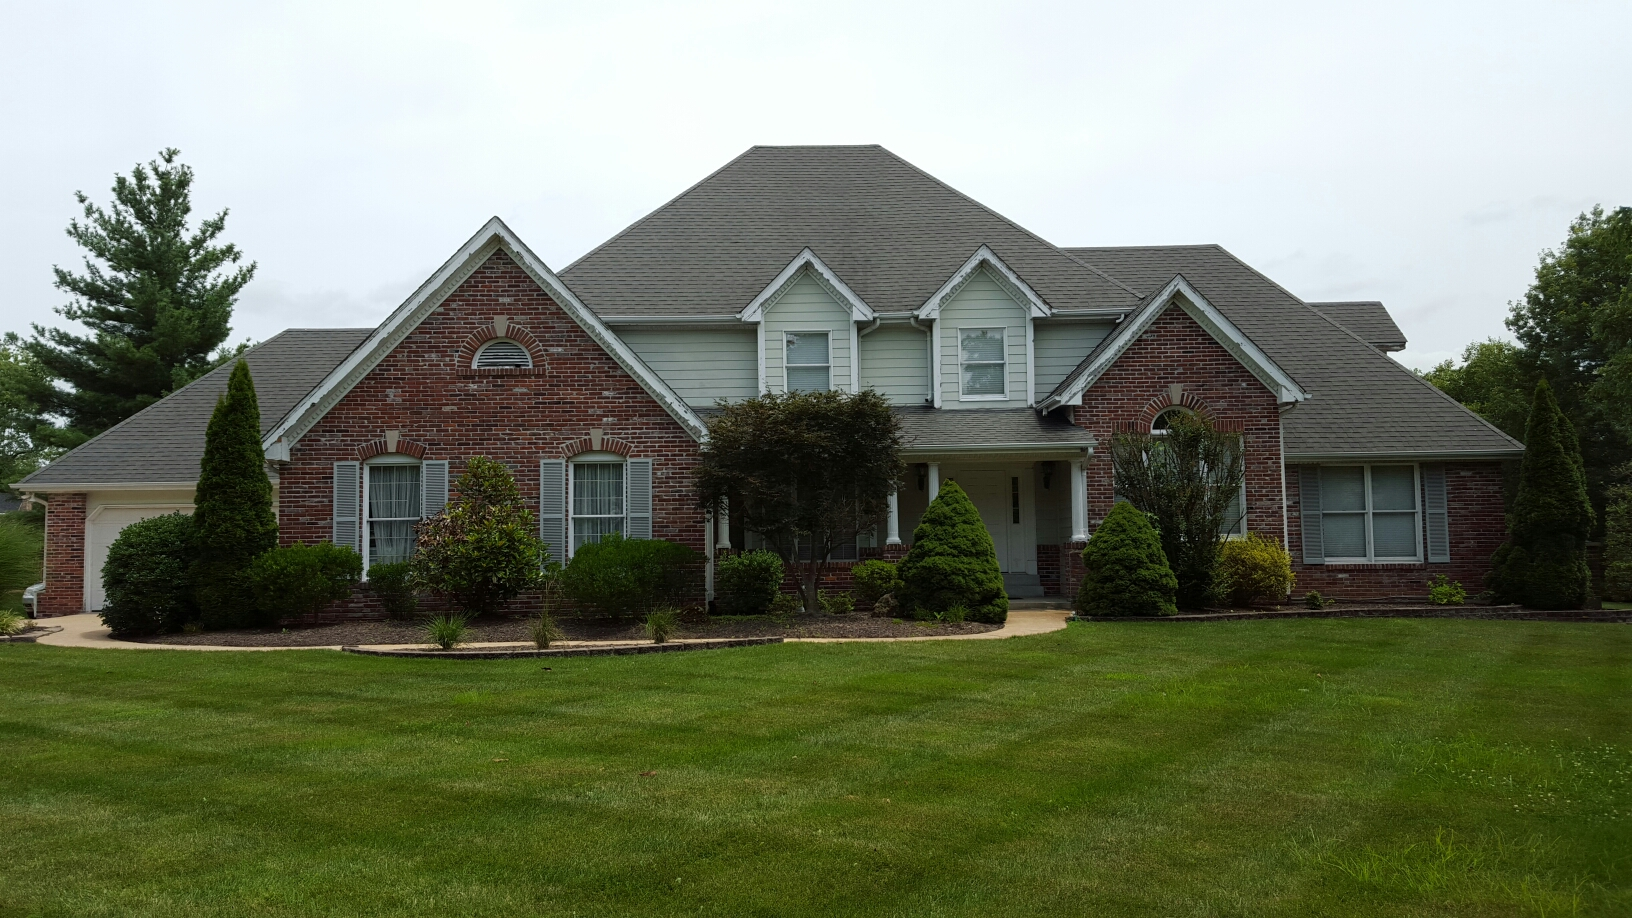 Chesterfield, MO - Inspection for hail damage in Chesterfield. Call Joe @ 314-550-7369